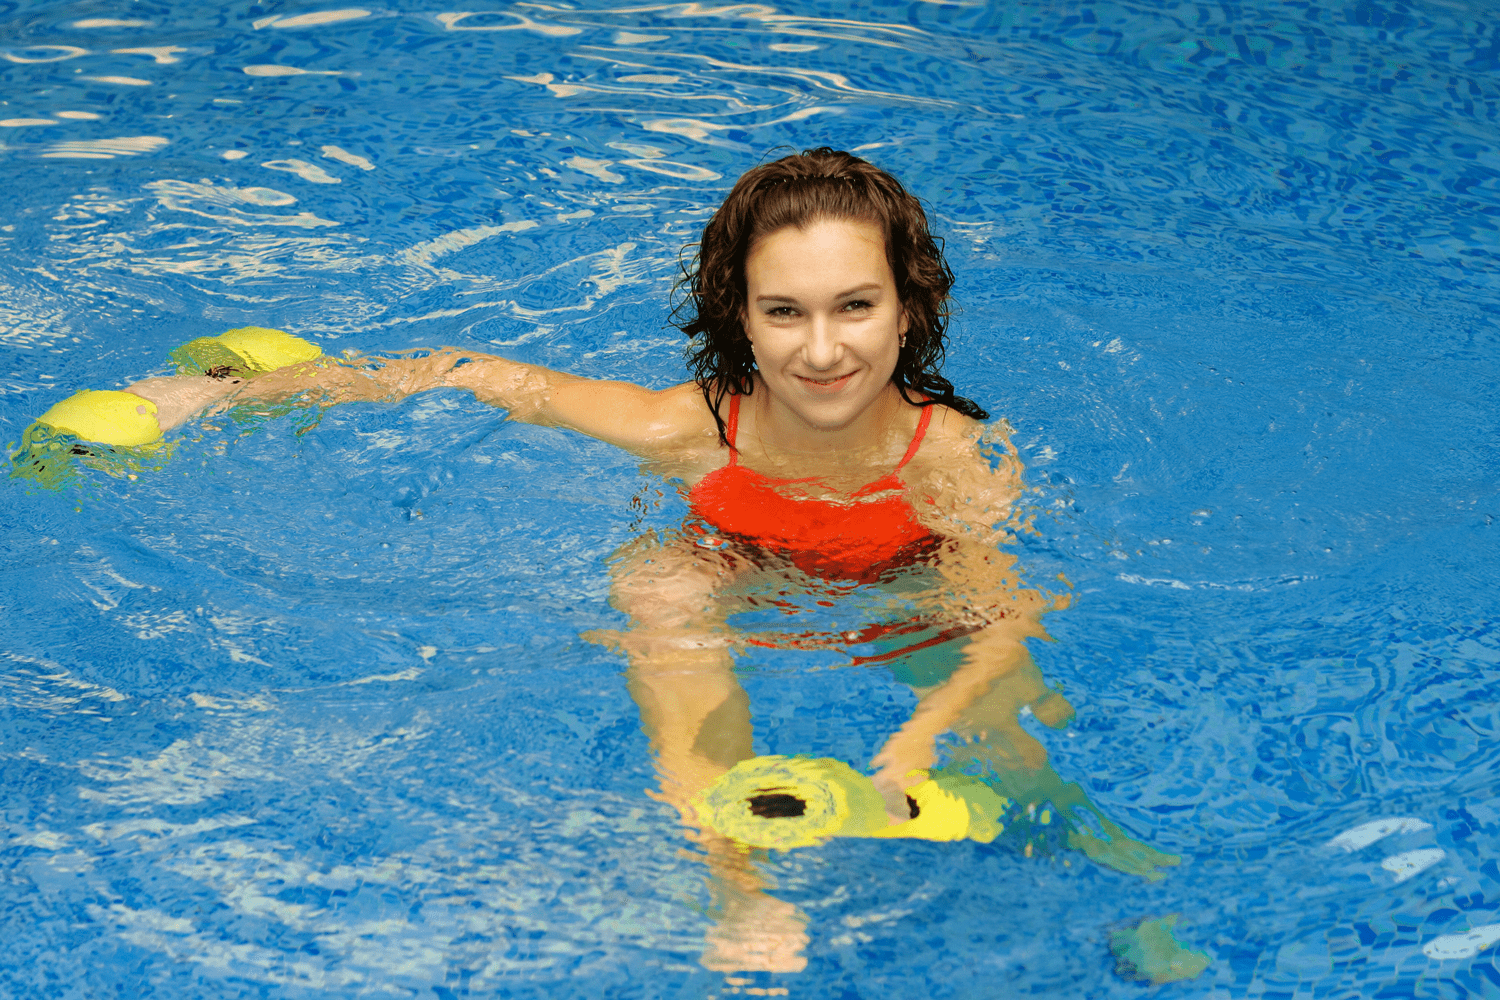 Women with dumbells in the pool